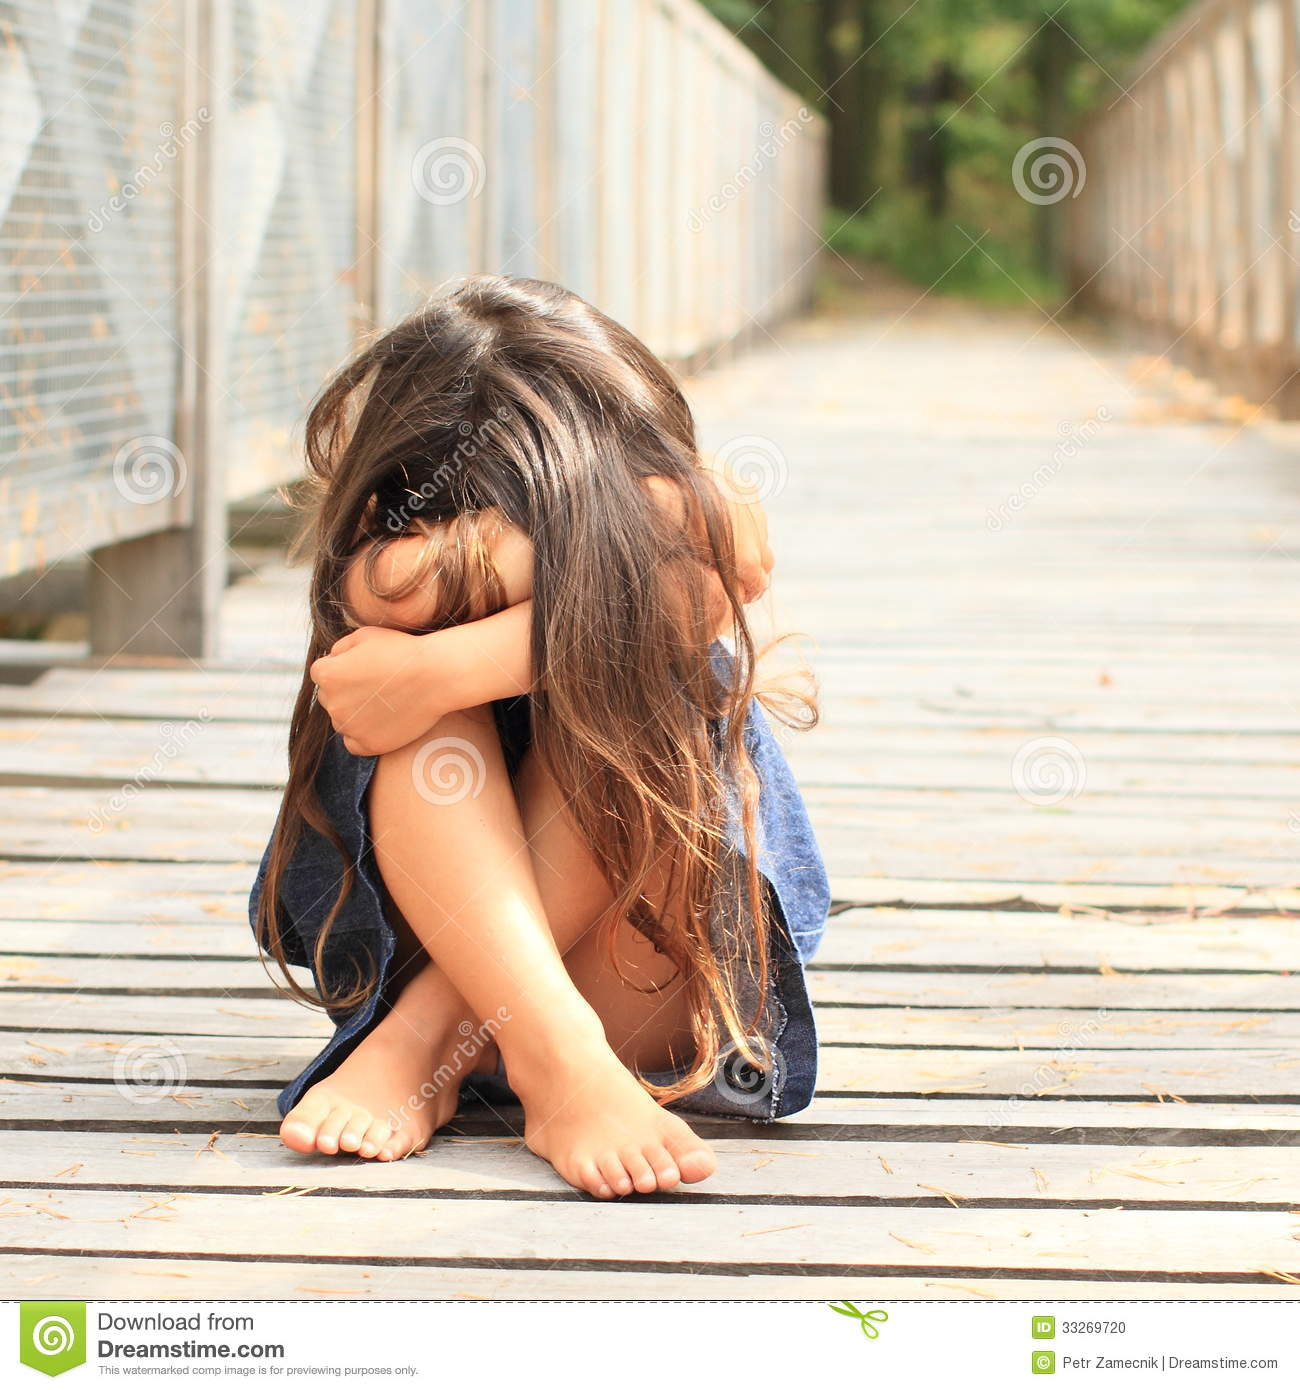 Sad barefoot girl with long hair in blue skirt sitting wooden bridge